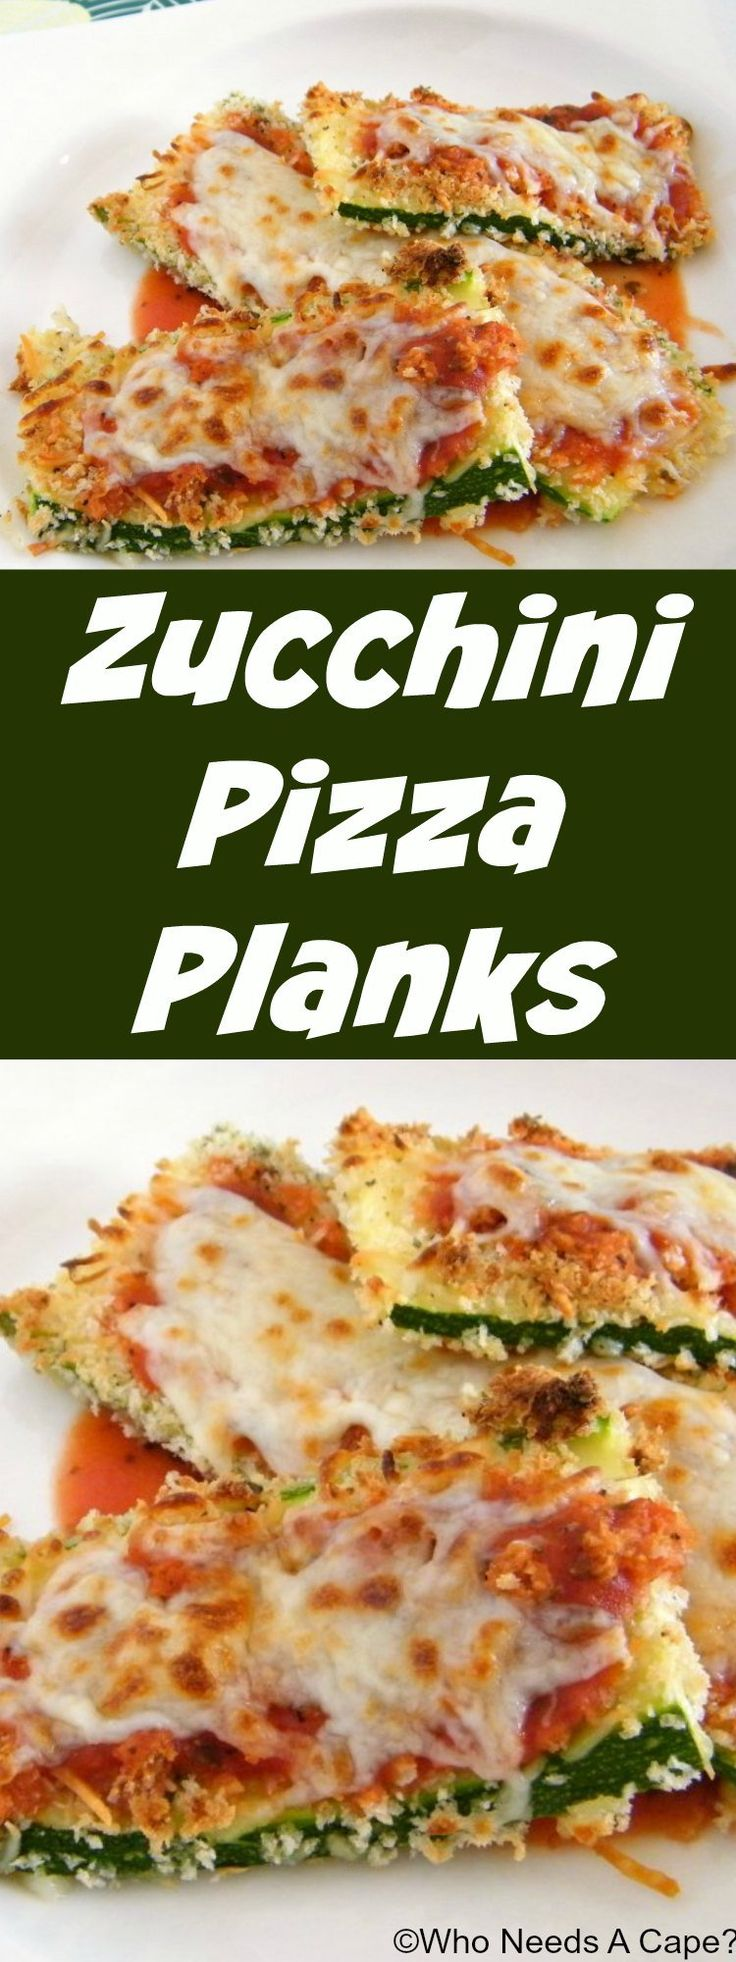 Zucchini Pizza Planks | Who Needs A Cape?